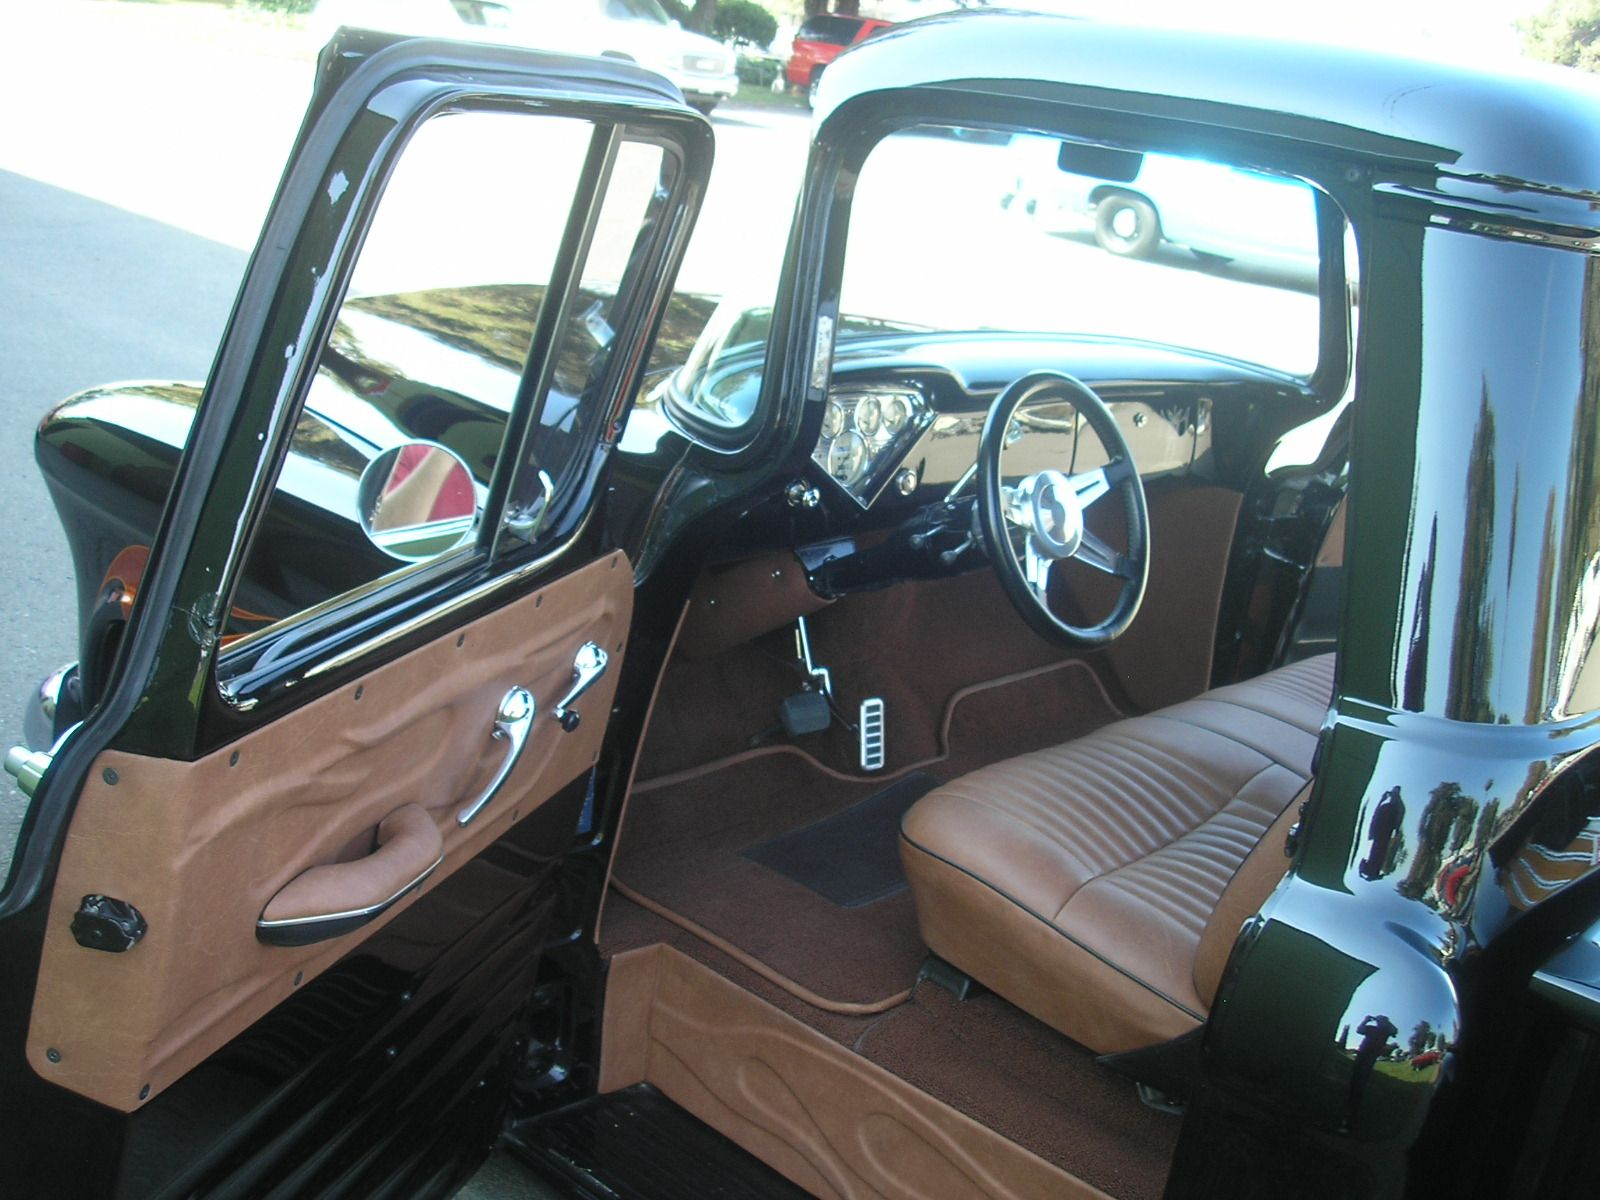 1955 chevy truck interior 55 chevy truck ideas pinterest truck interior chevy and interiors. Black Bedroom Furniture Sets. Home Design Ideas